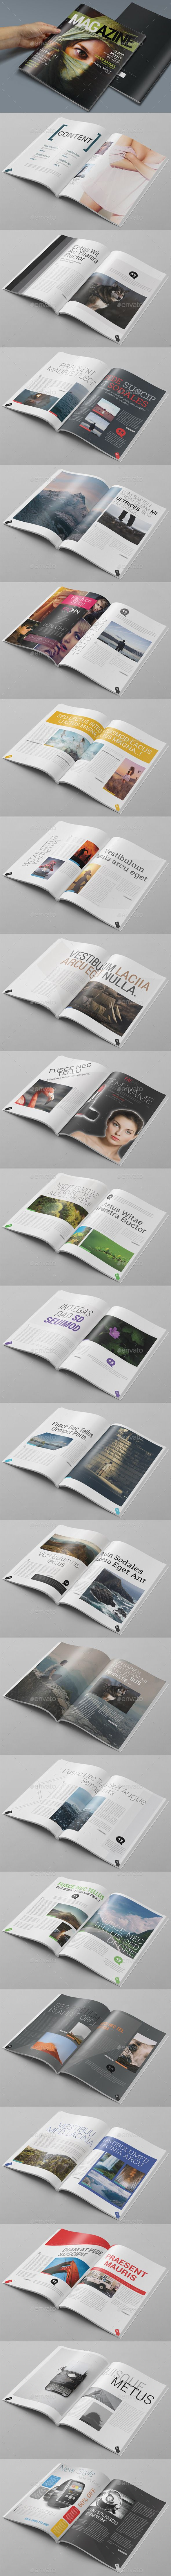 44 Pages Photoshop Magazine Template #design #journal Download: http://graphicriver.net/item/44-pages-photoshop-magazine-template/10891884?ref=ksioks